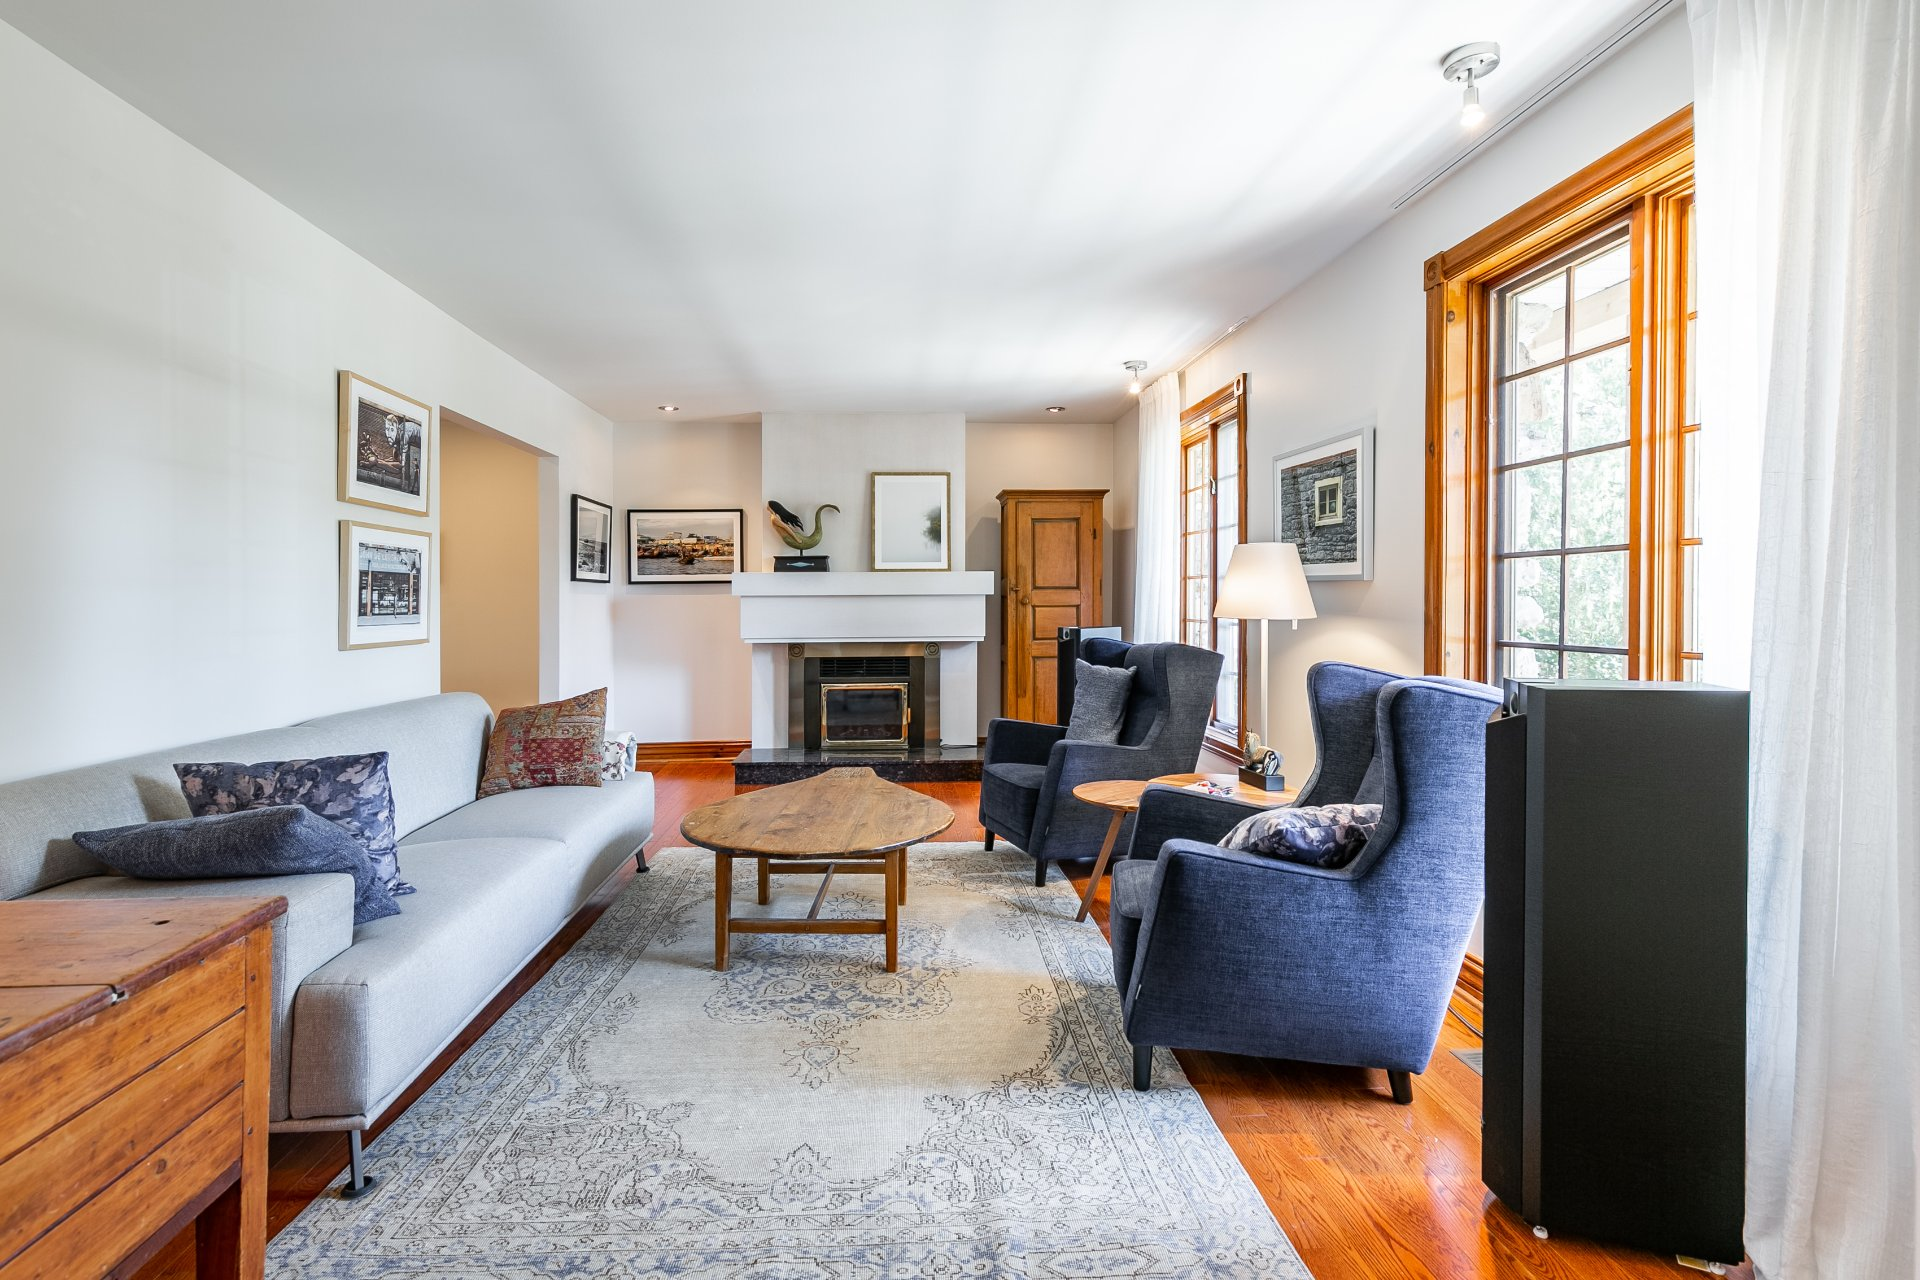 House for sale, Montréal (Ahuntsic-Cartierville)